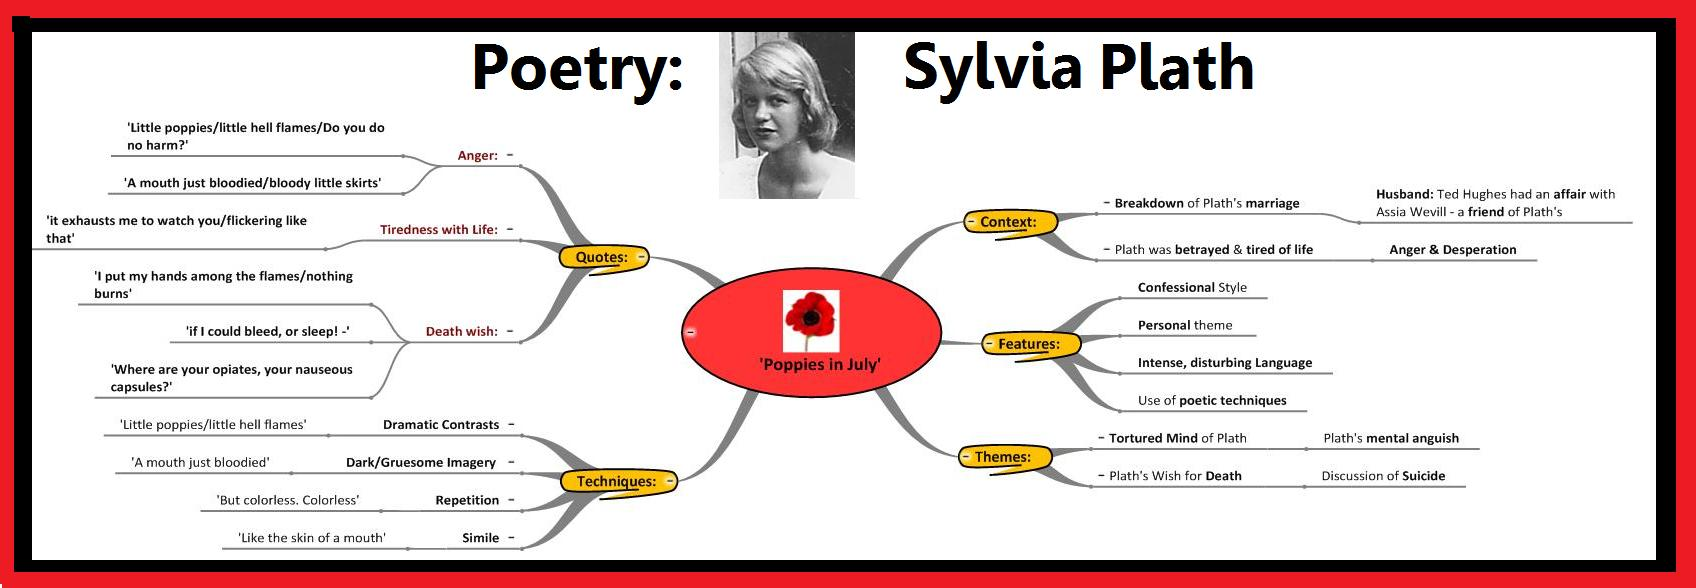 thesis statement for sylvia plath daddy Comments and analysis from the telegraph major currency pairs forex quotes - forex tradingcharts thesis statement on daddy by sylvia plath com forex tradingcharts com.